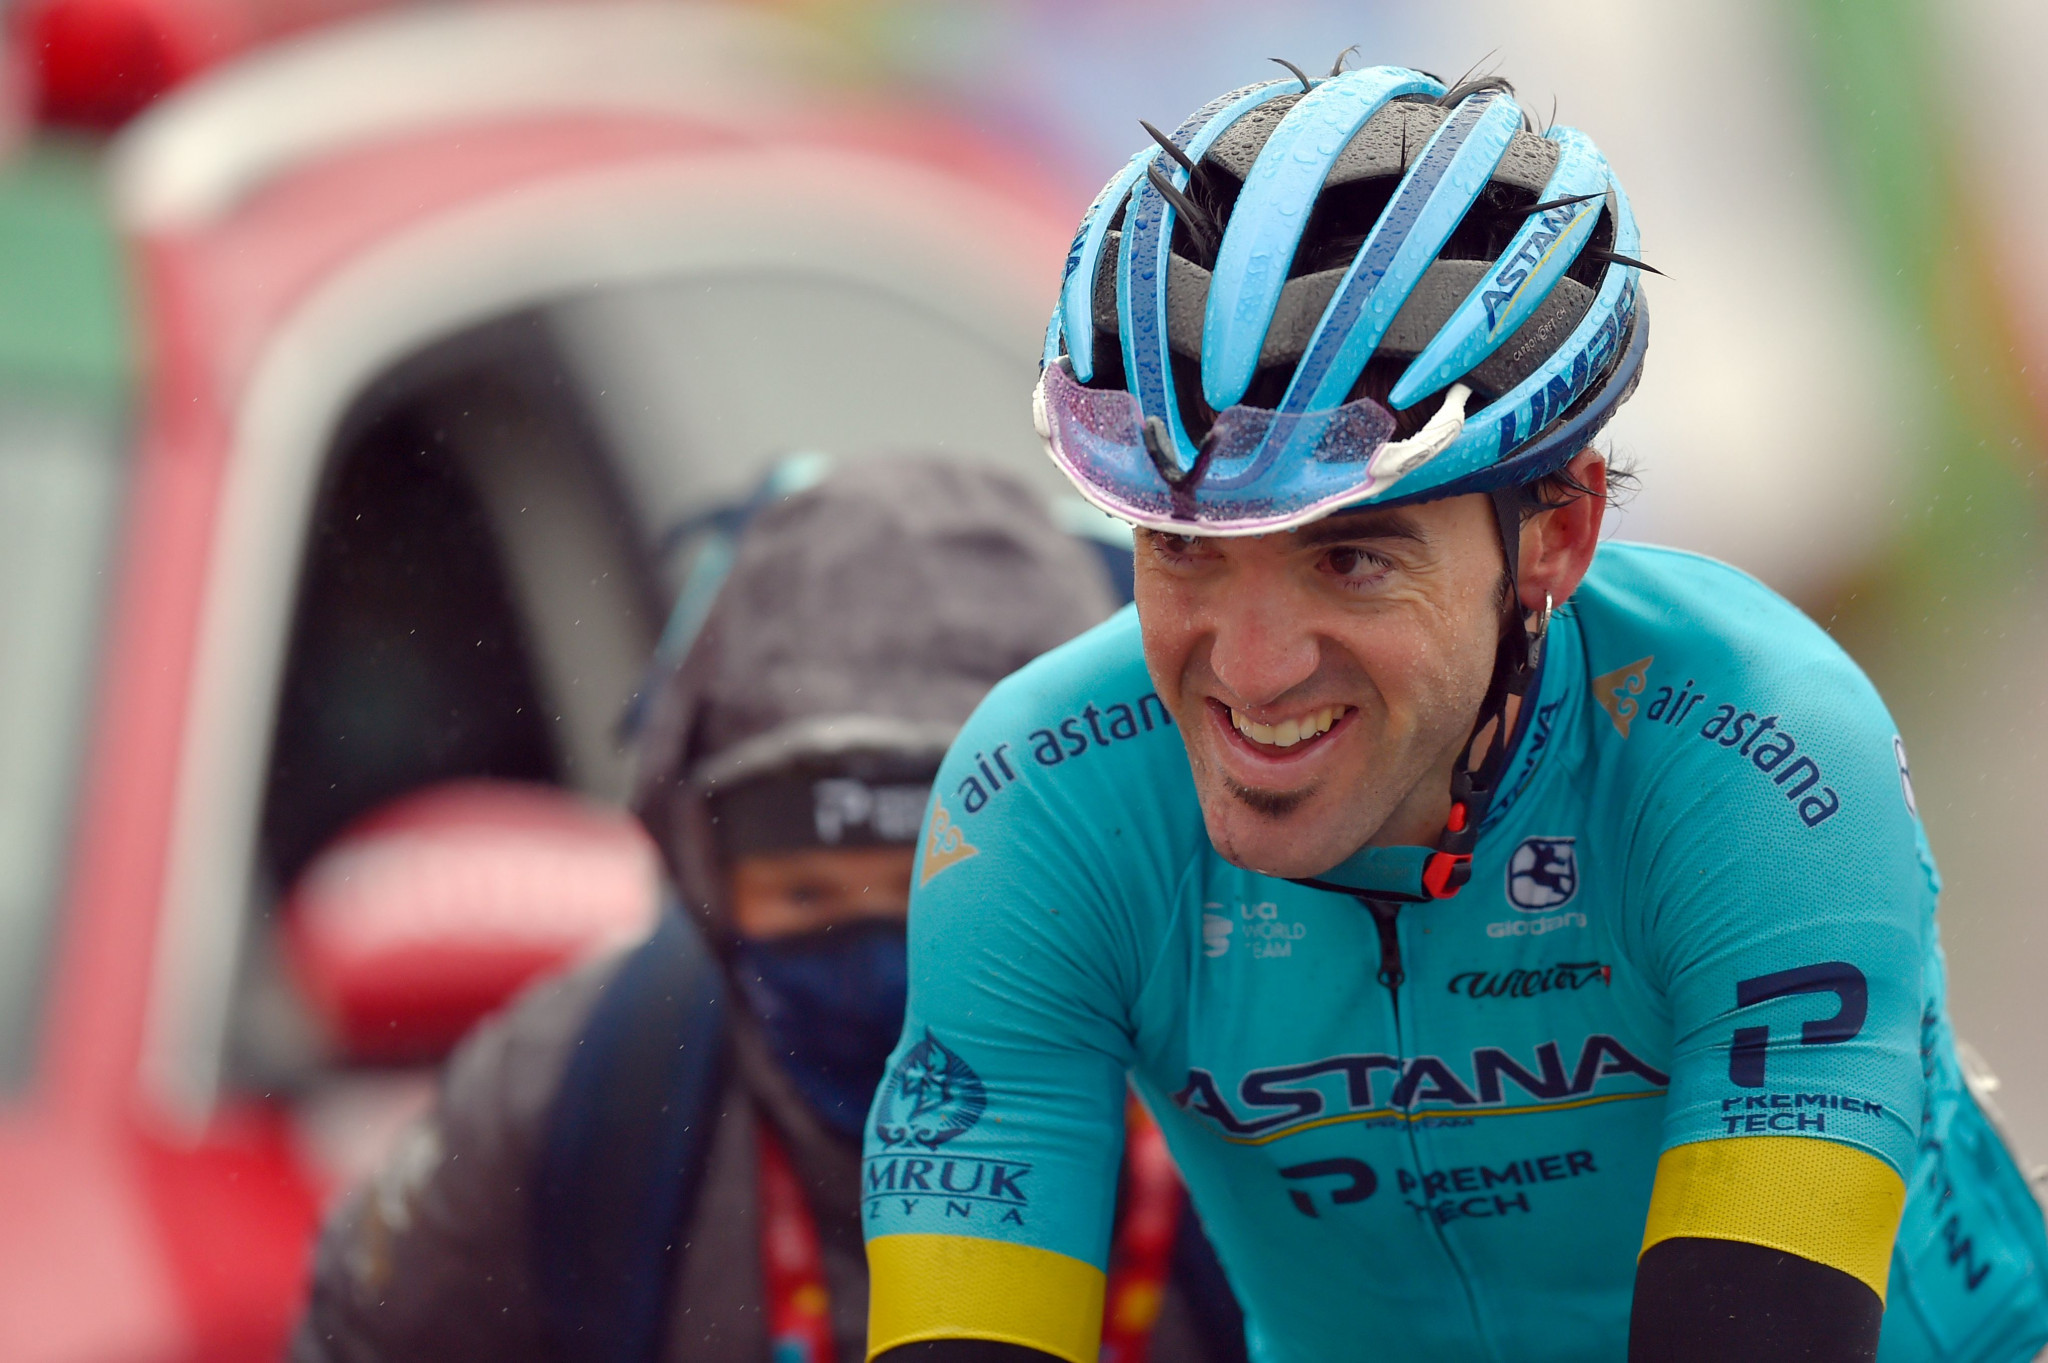 Home favourite Izagirre wins stage six as Carapaz takes overall Vuelta a España lead